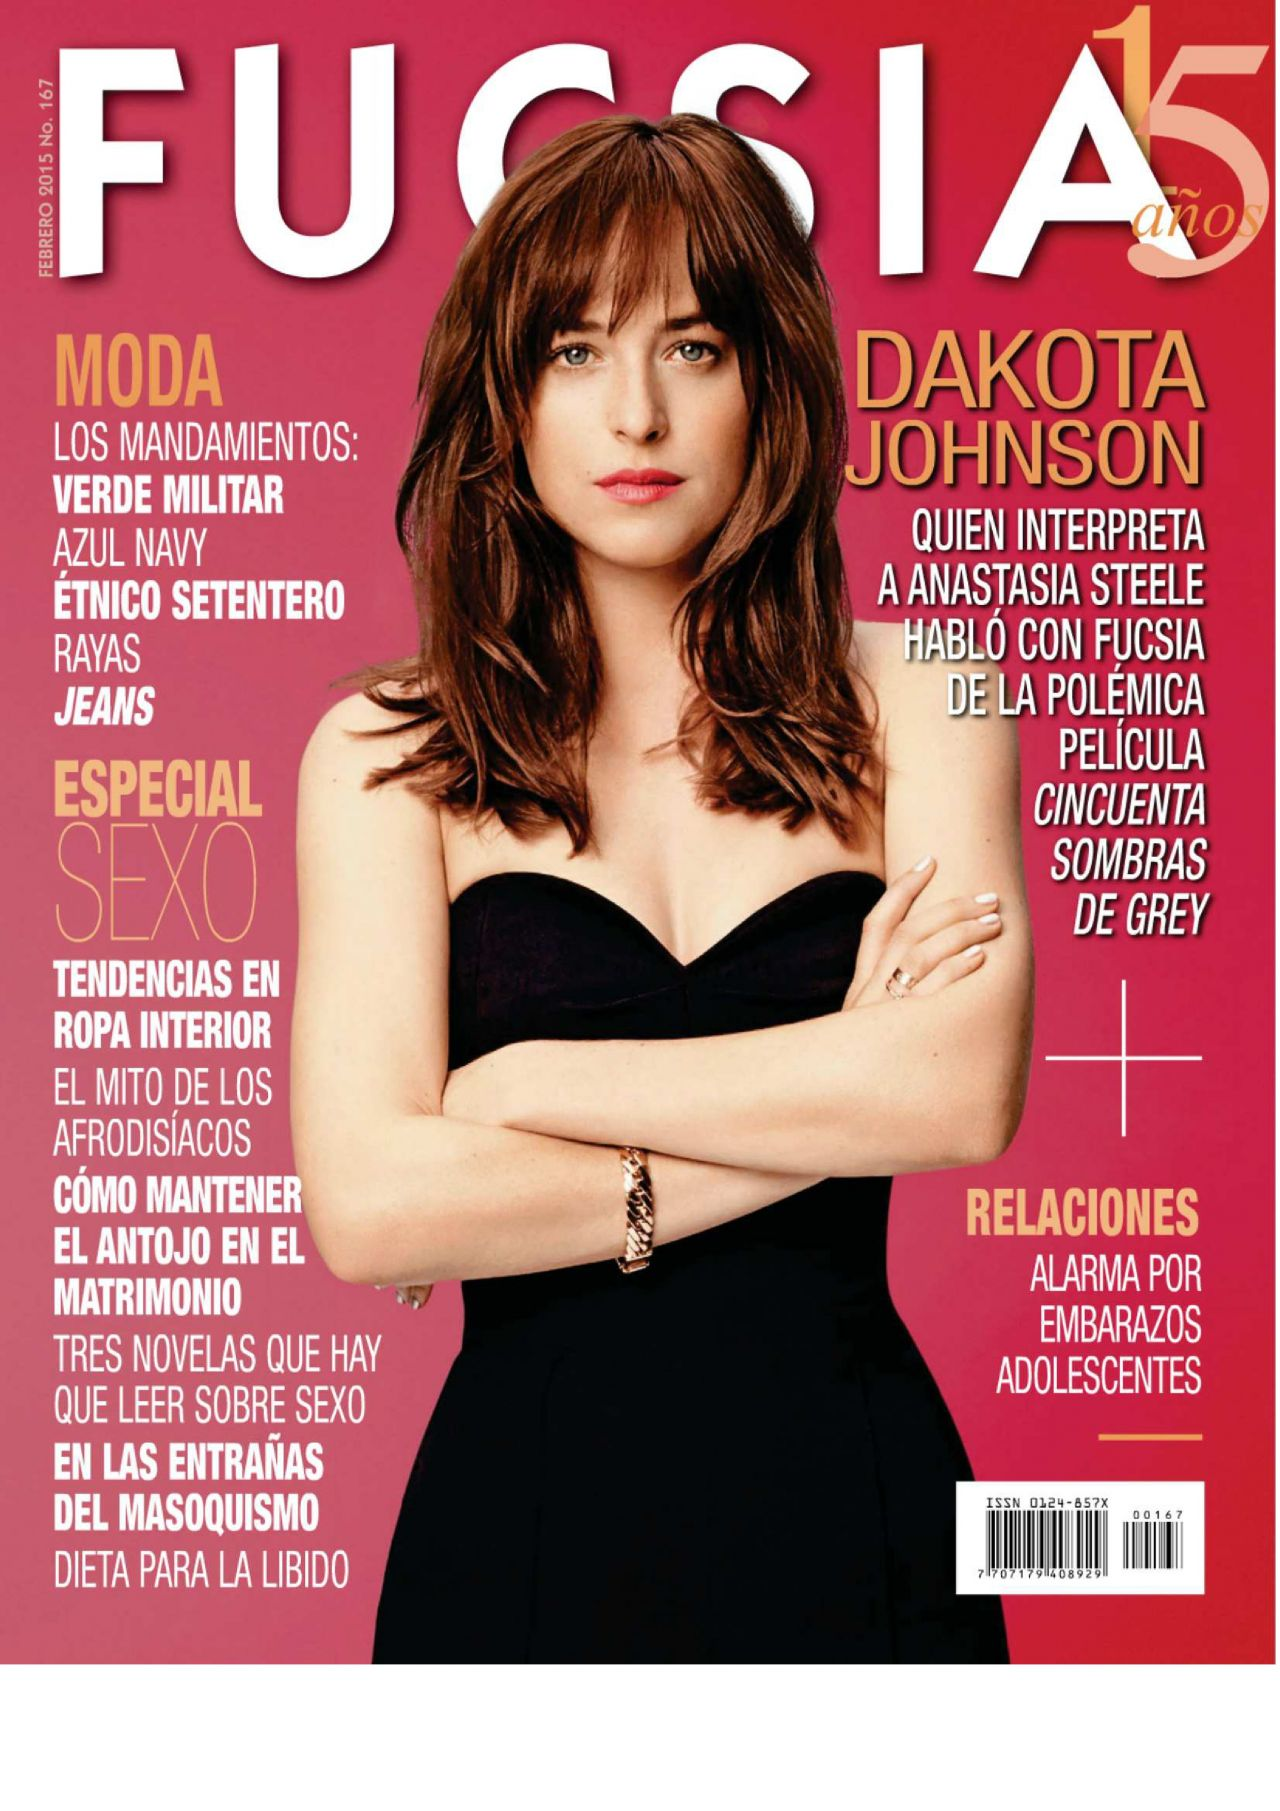 Dakota Johnson - Fucsia Magazine February 2015 Issue